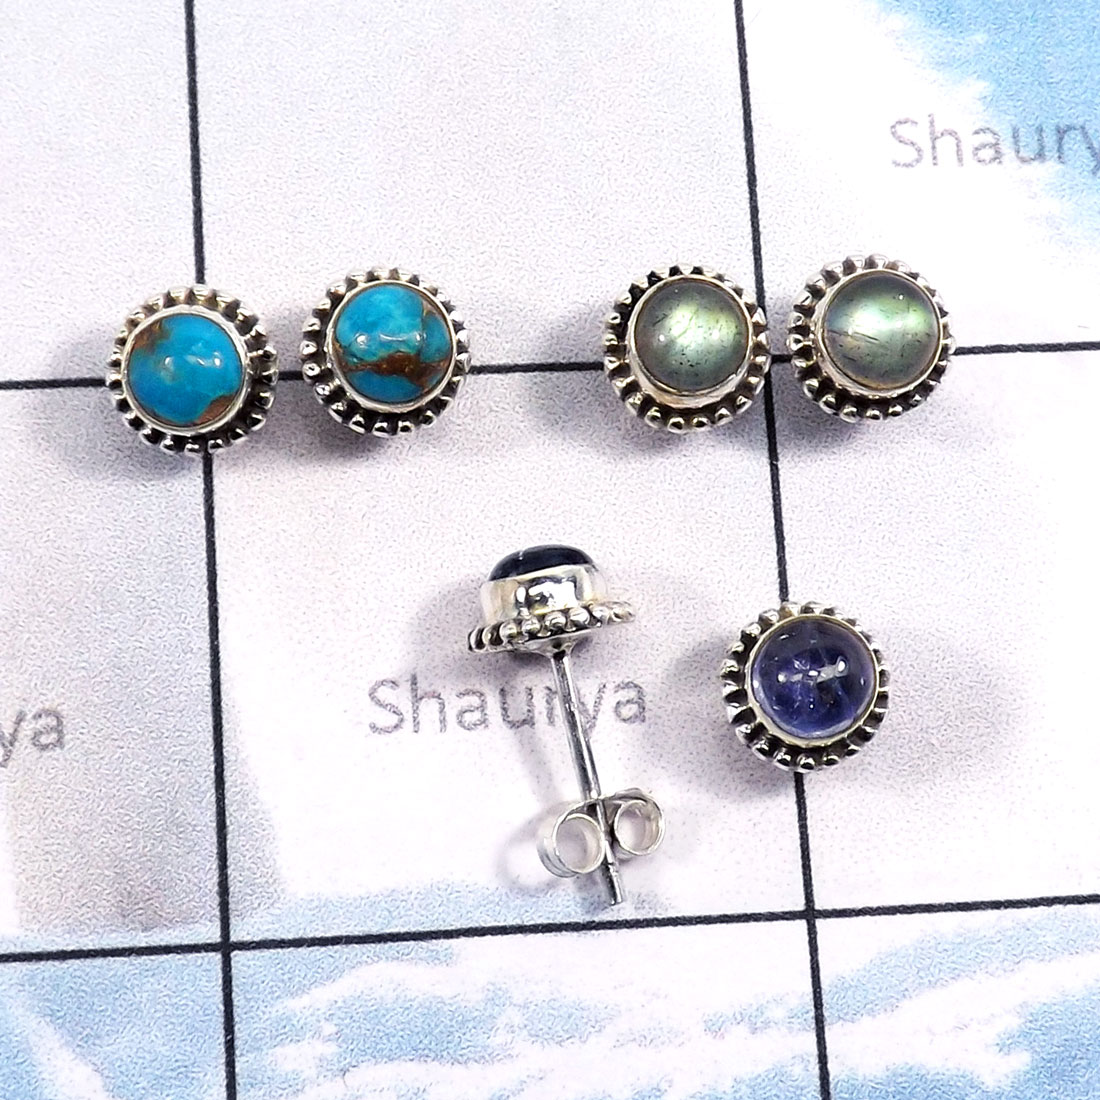 3Pairs Labradorite,Turquouise,Tanzanite Lot A - SSE869-5mm Round Shape Wholesale 3Pairs Stud Earrings With Multi